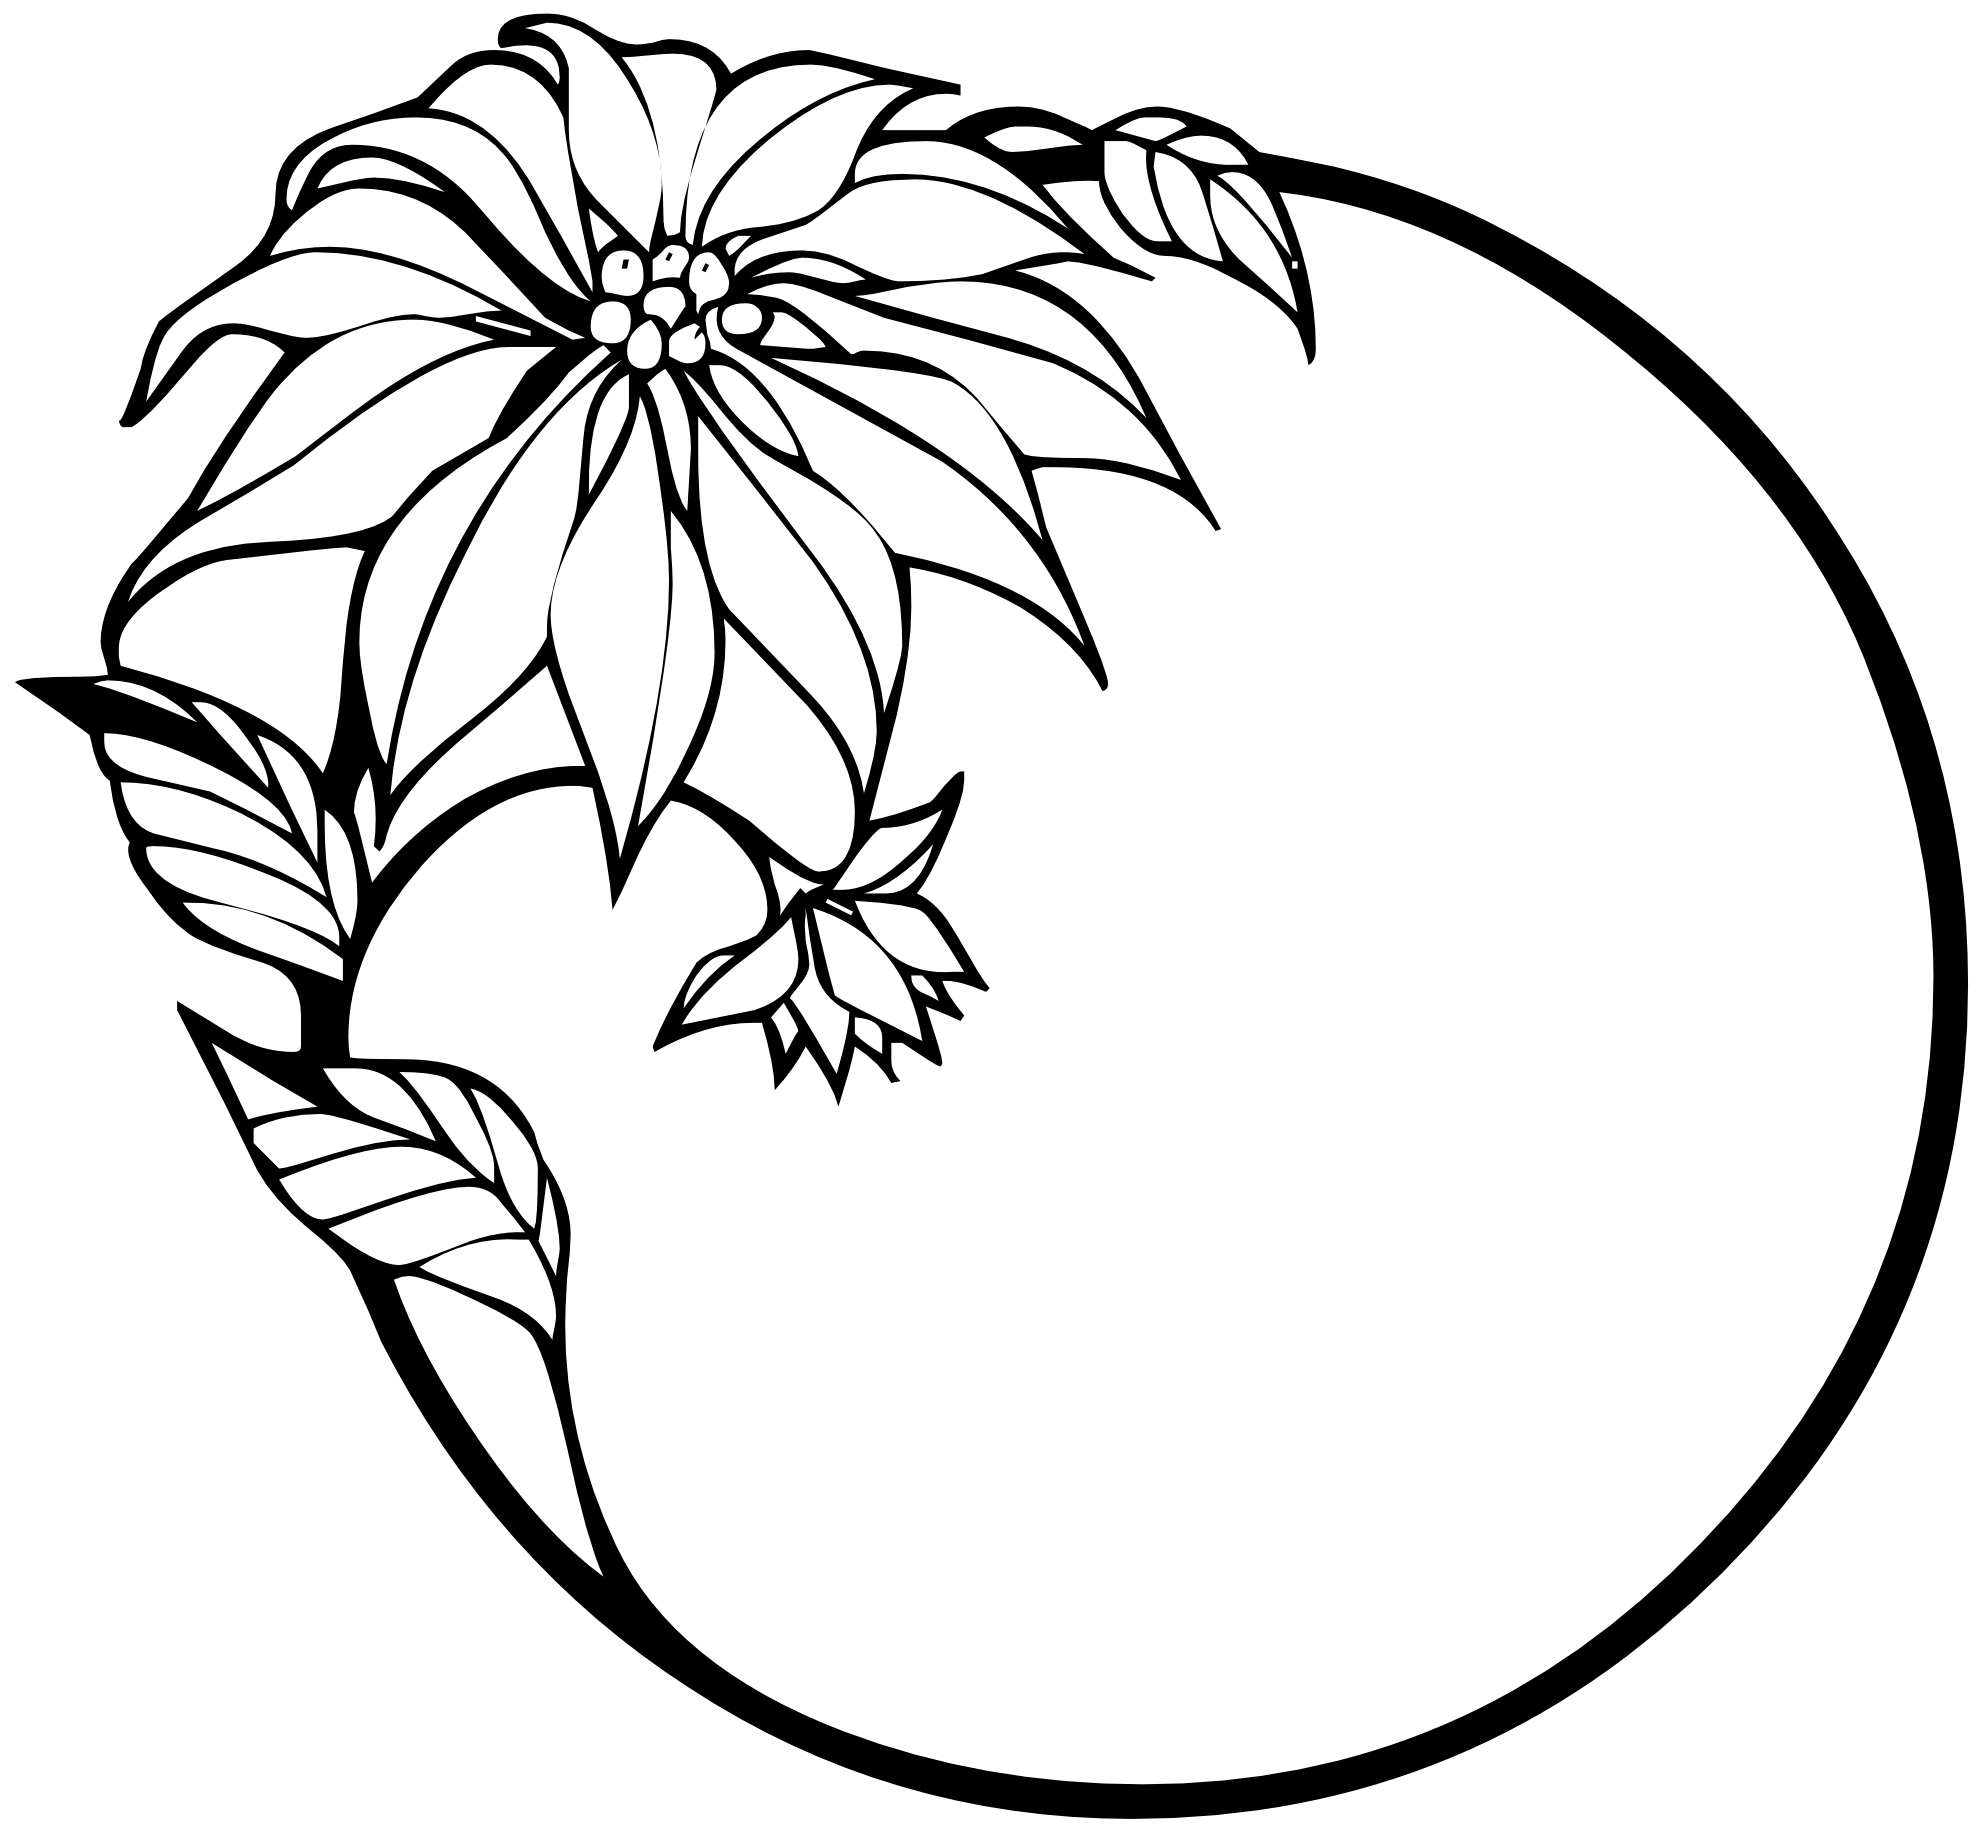 Black and white clipart of a flower clipart black and white library Christmas Clipart Black And White Border | Clipart Panda - Free ... clipart black and white library